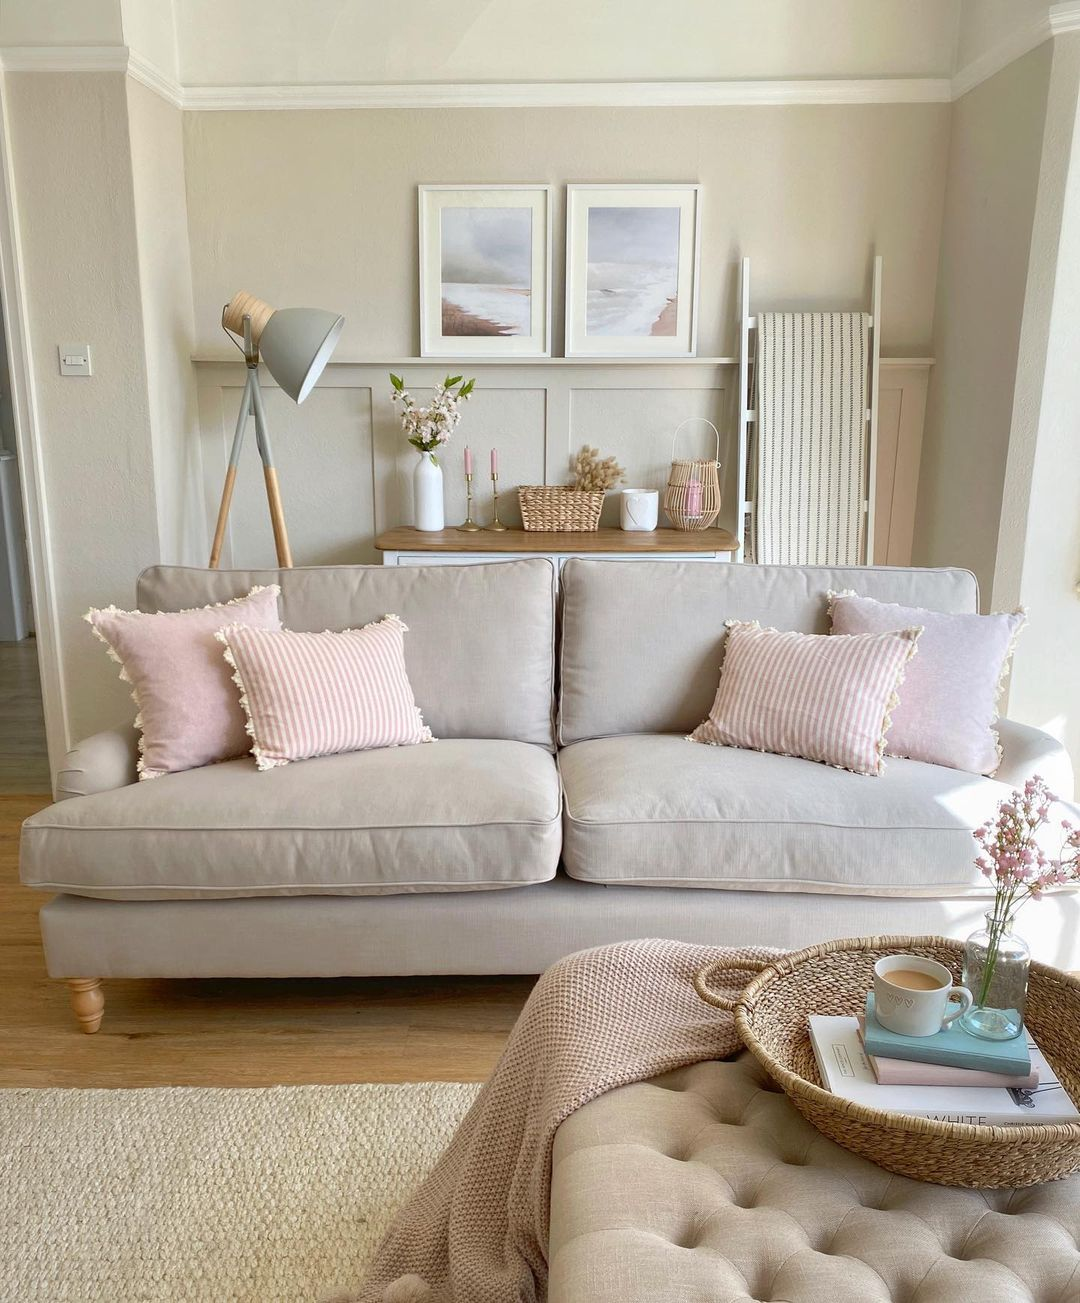 Light fabrics and lots of texture evoke a country, farmhouse feel in Sarah's living room